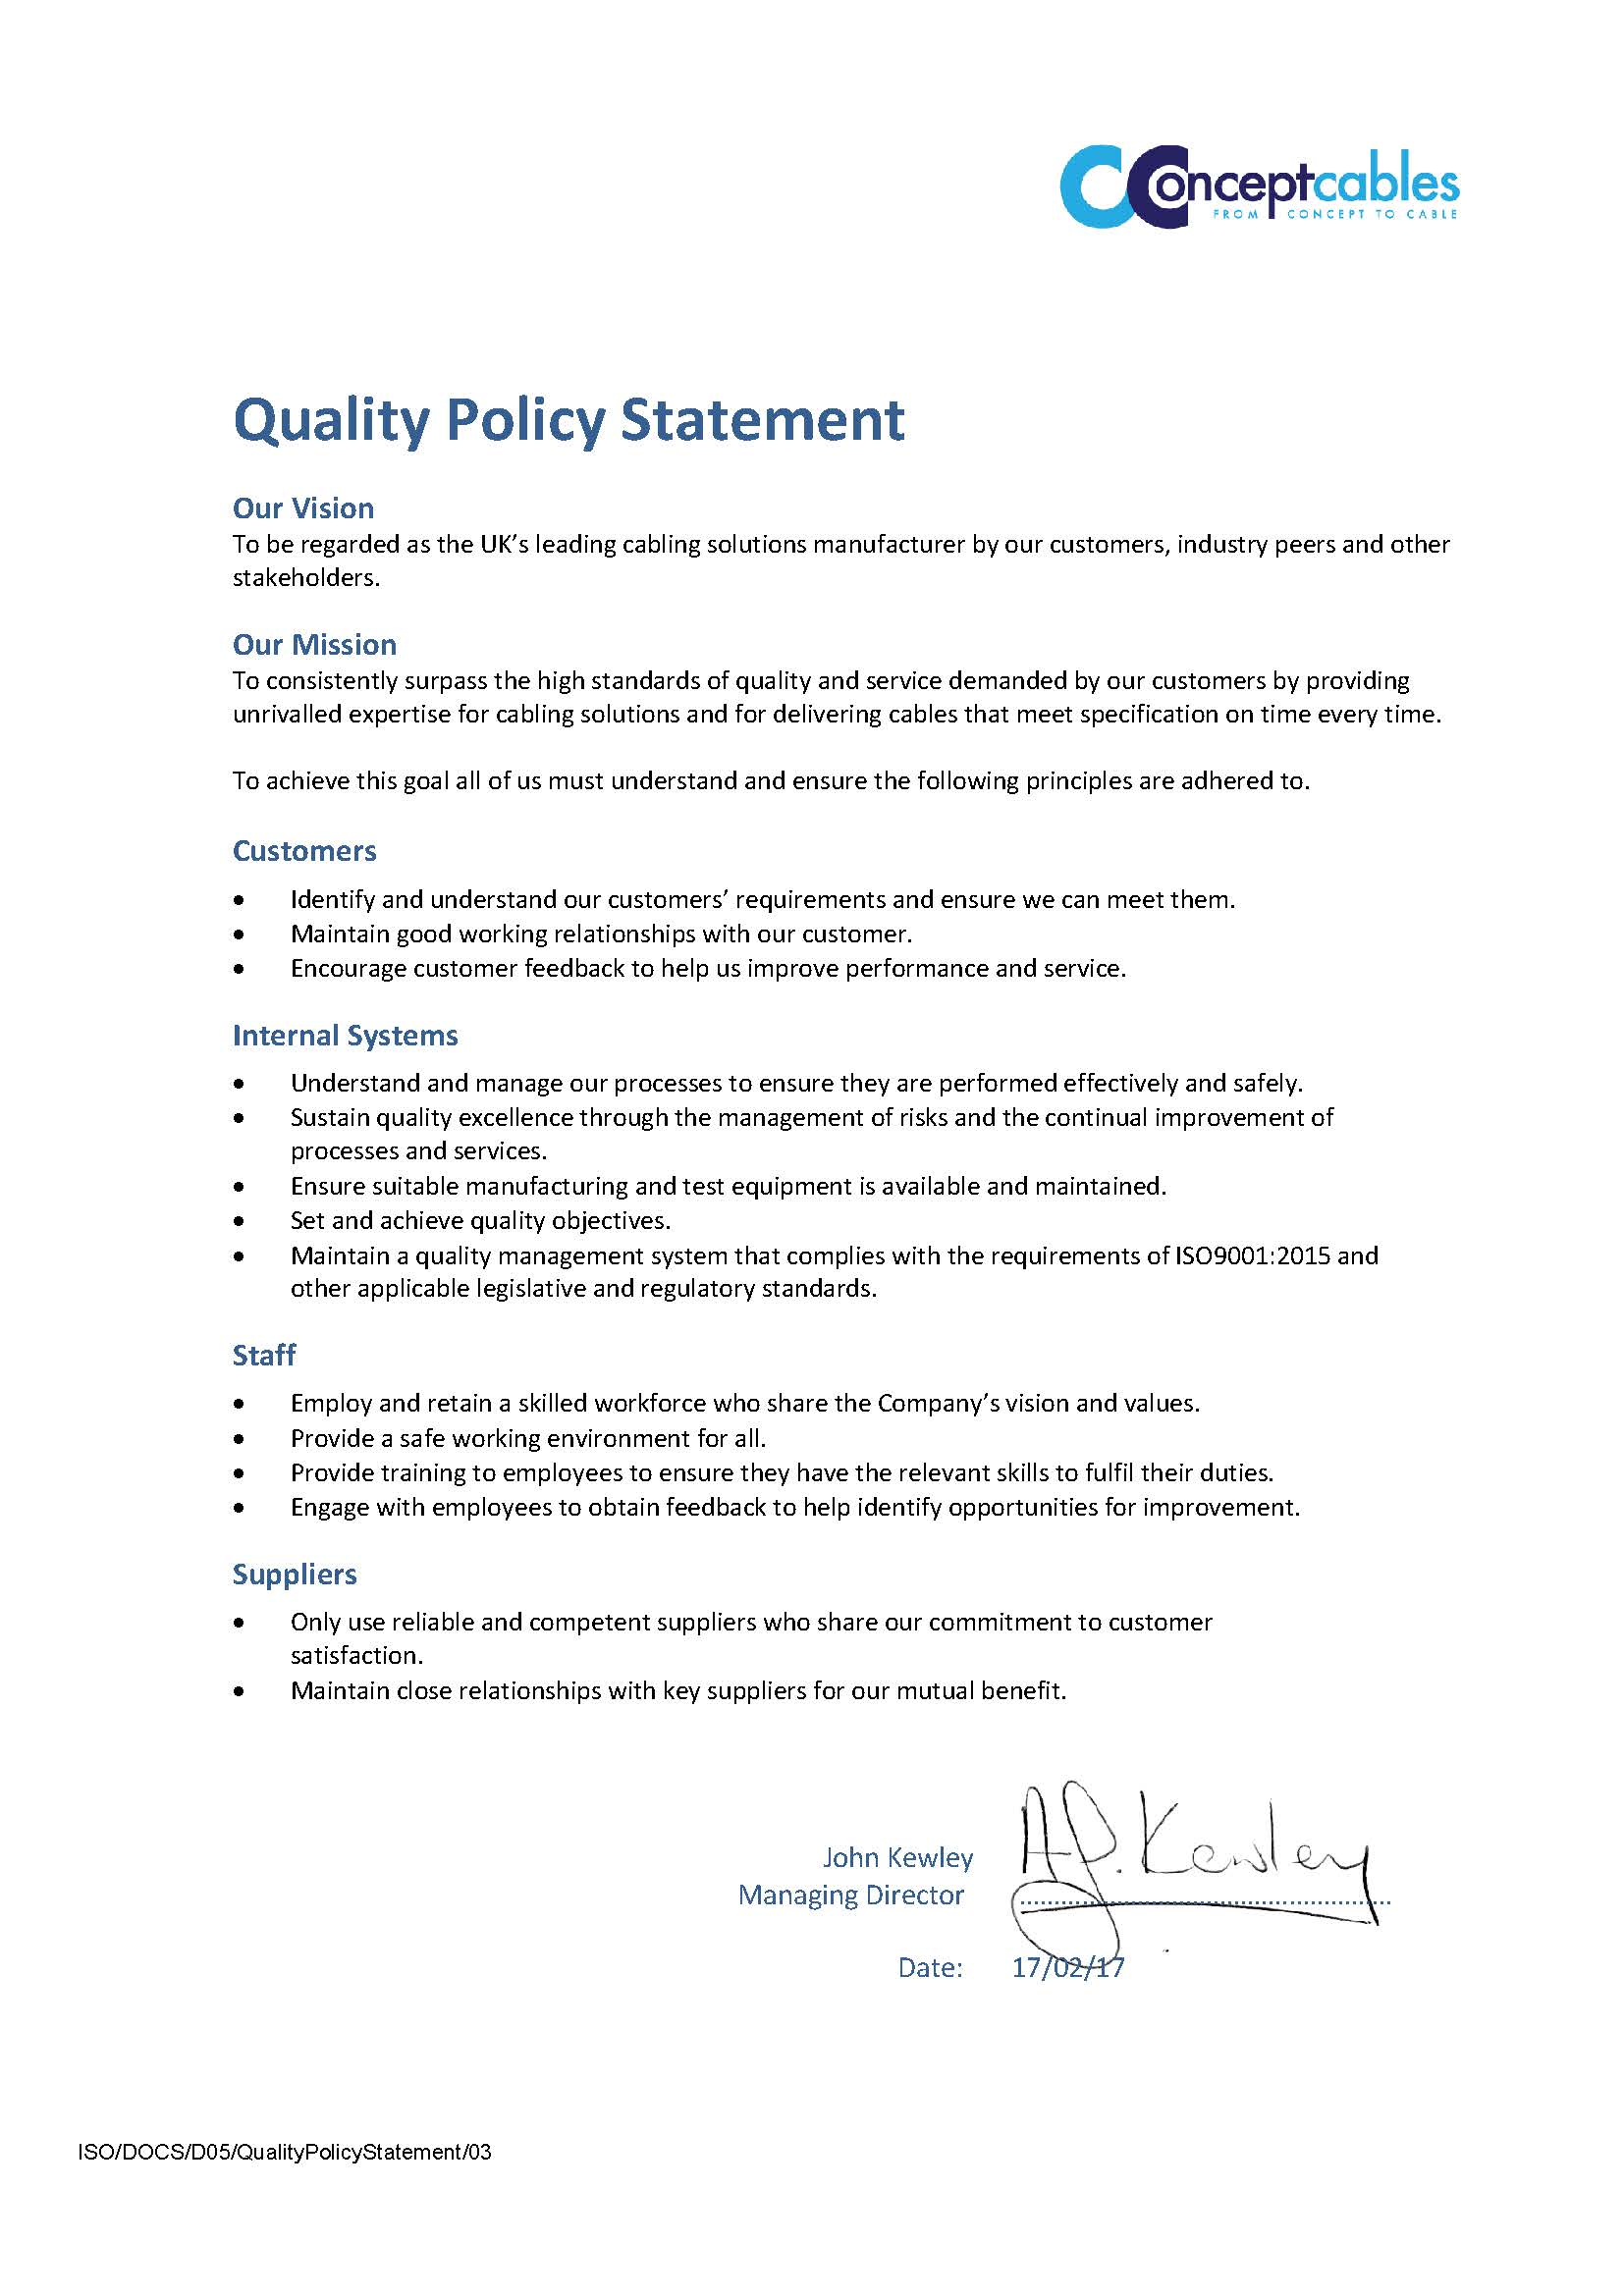 Quality Policy Statement Concept Cables